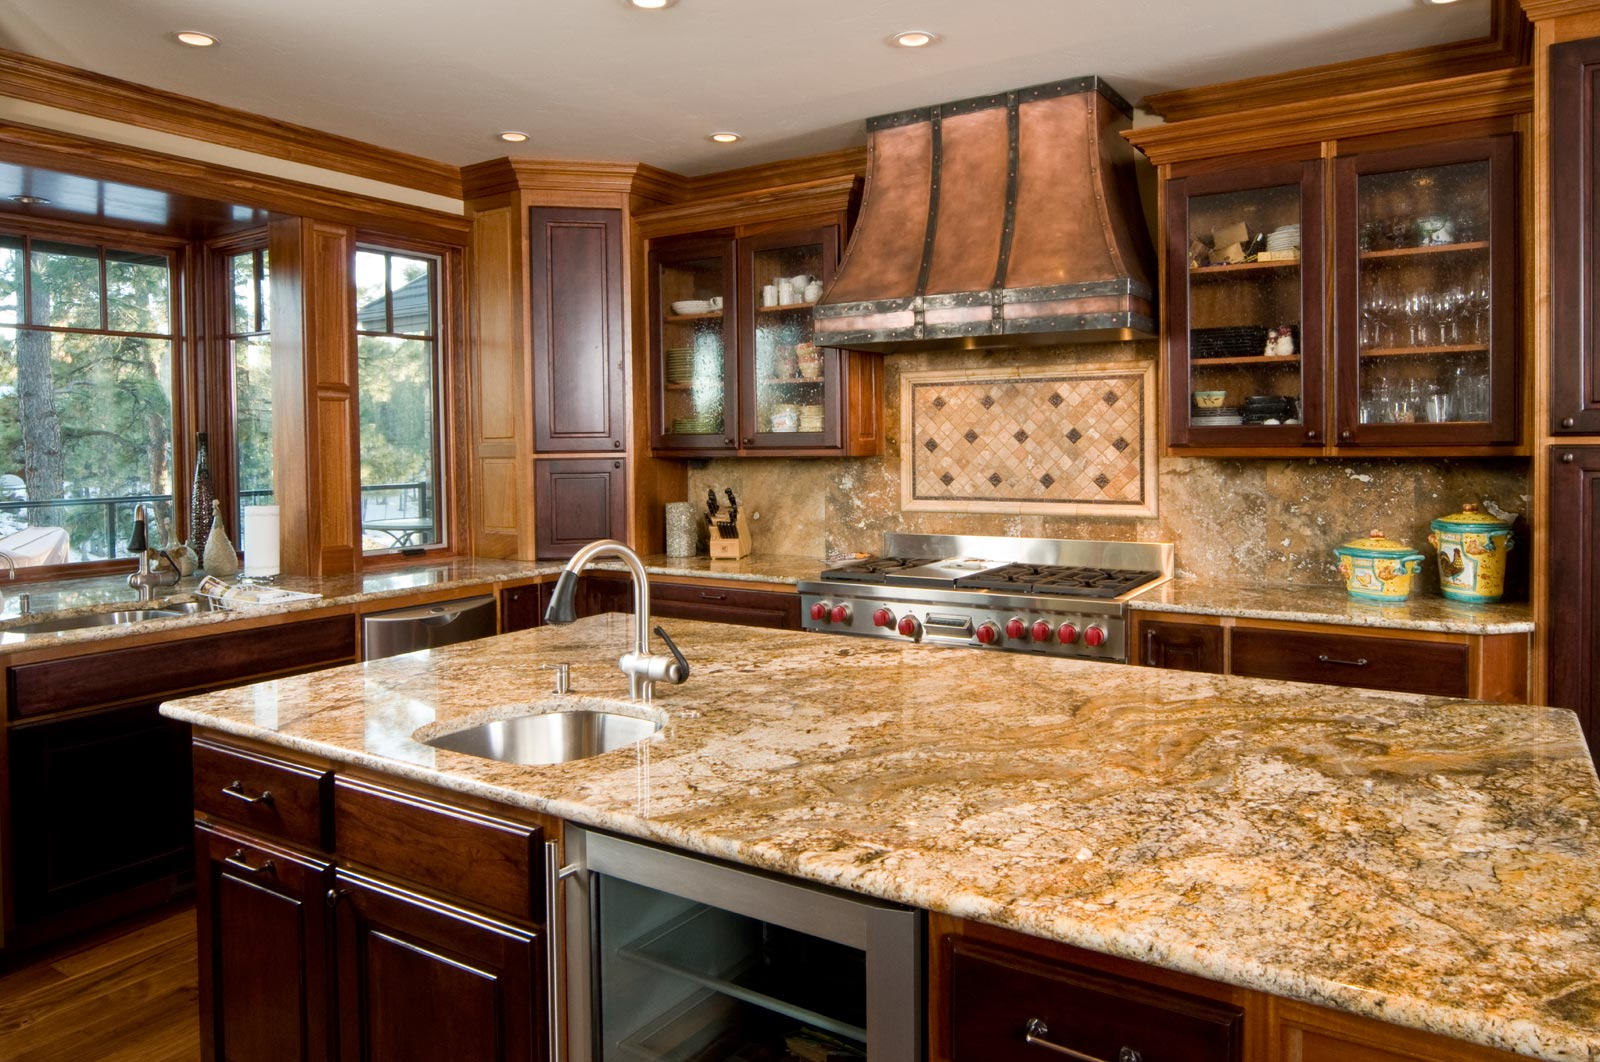 countertops v care of kitchen countertop granite saura in stones dutt famous